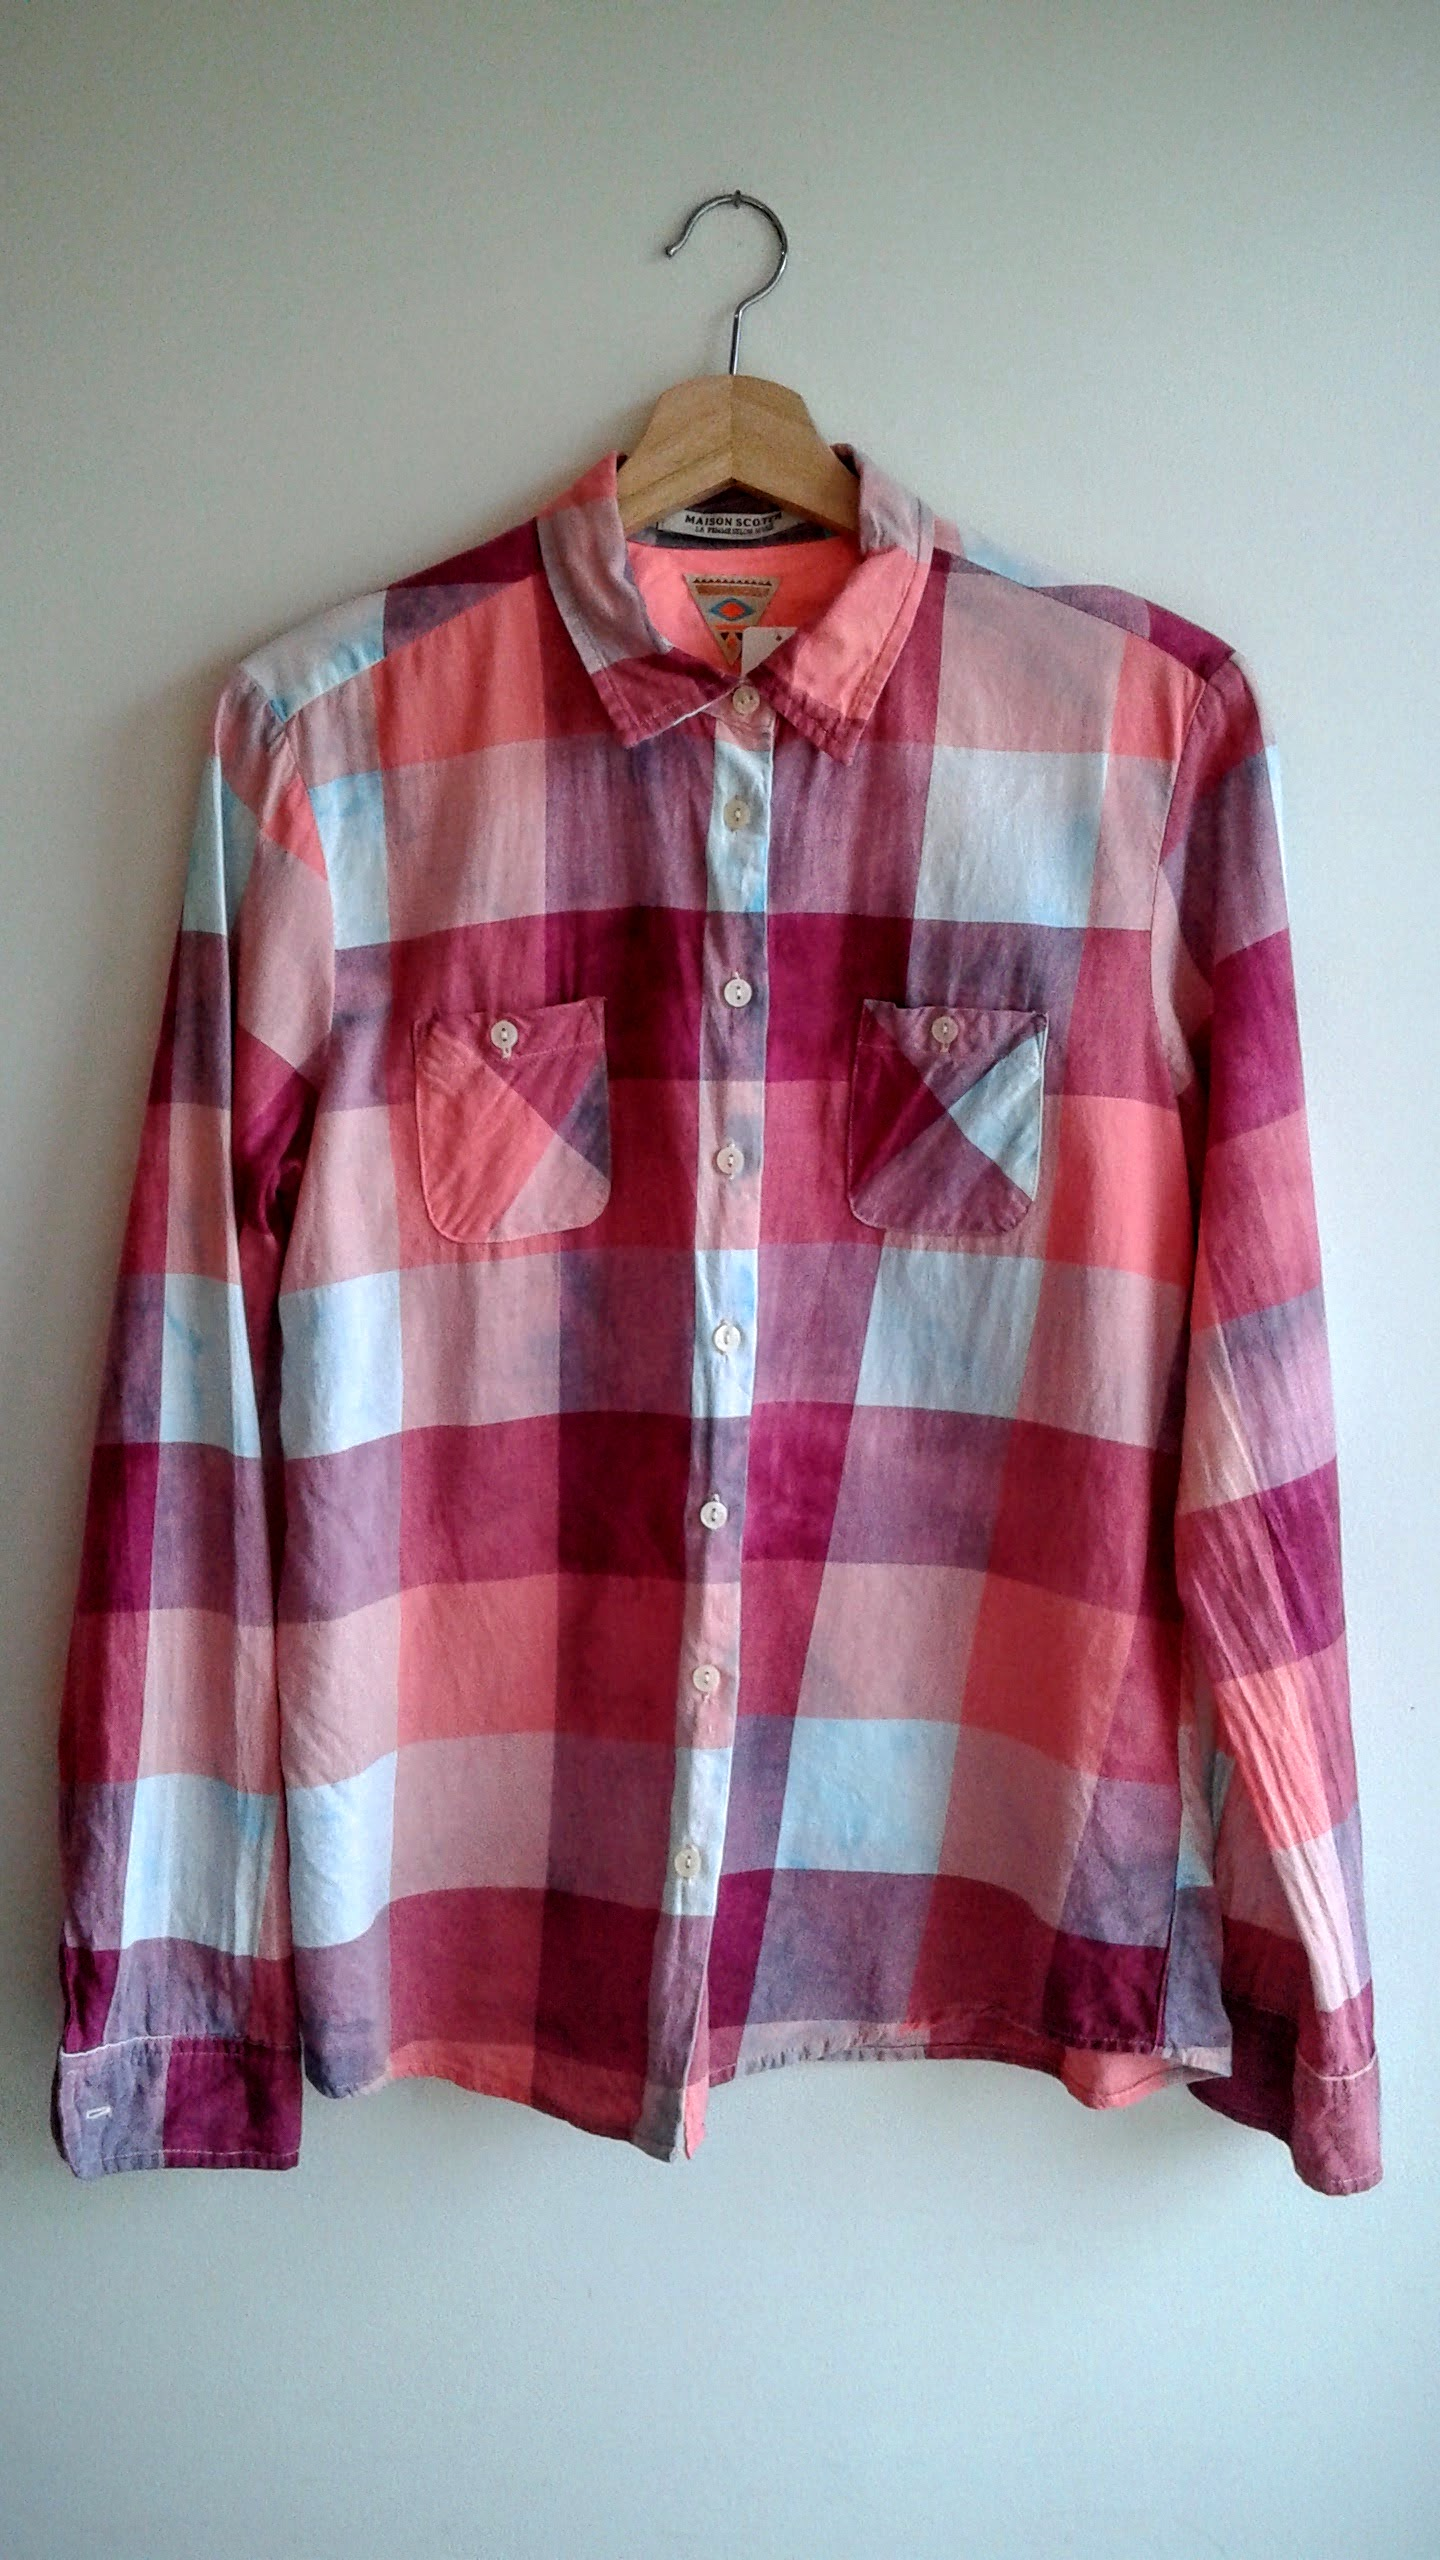 Maison Scotch shirt; Size M, $26